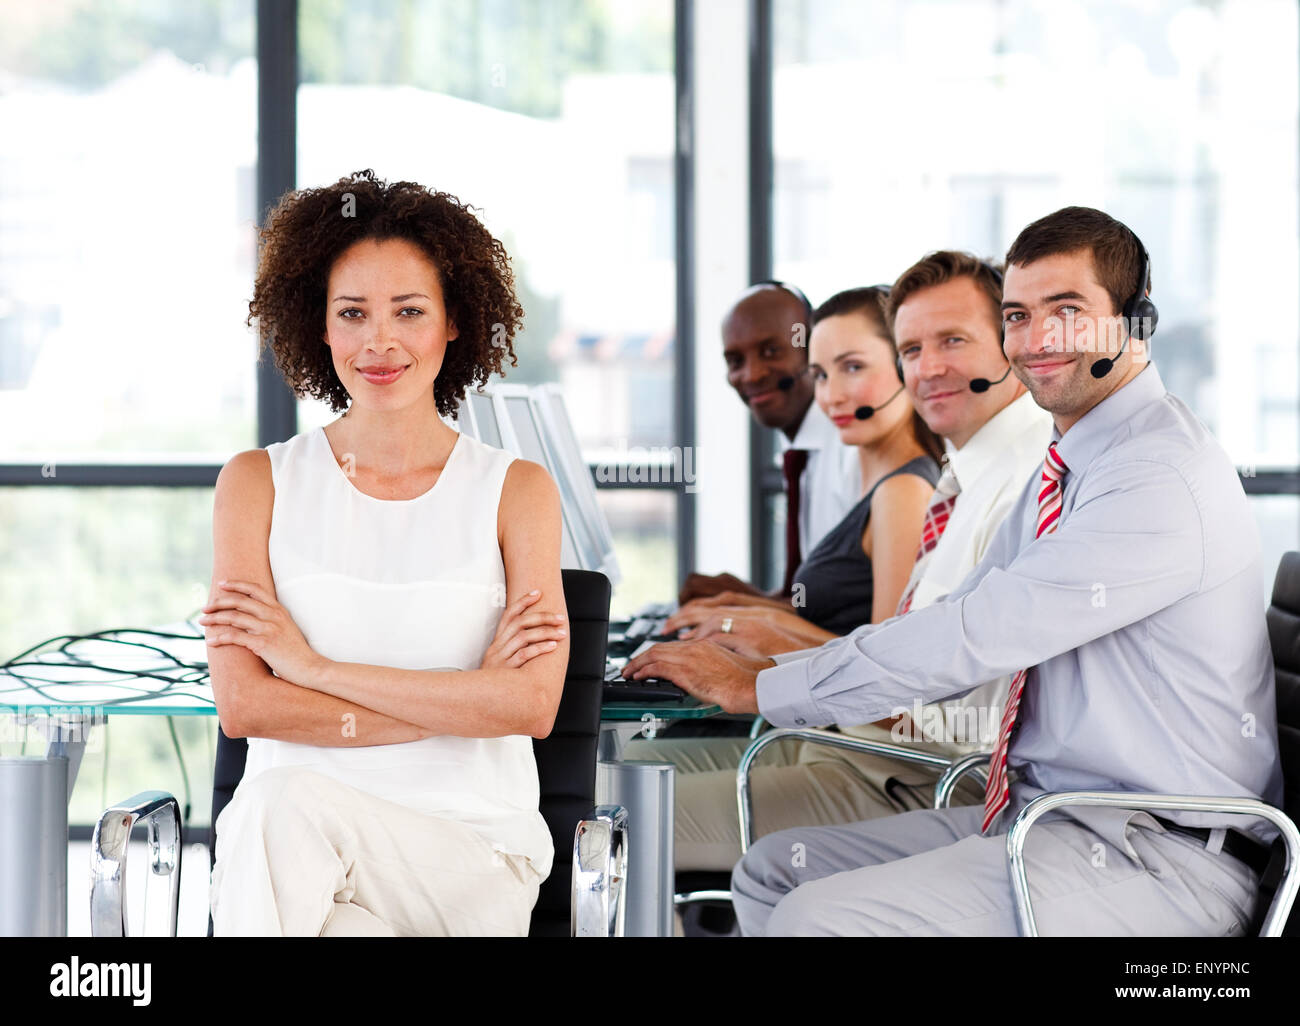 Young Female In Call Center Stock Photos & Young Female In